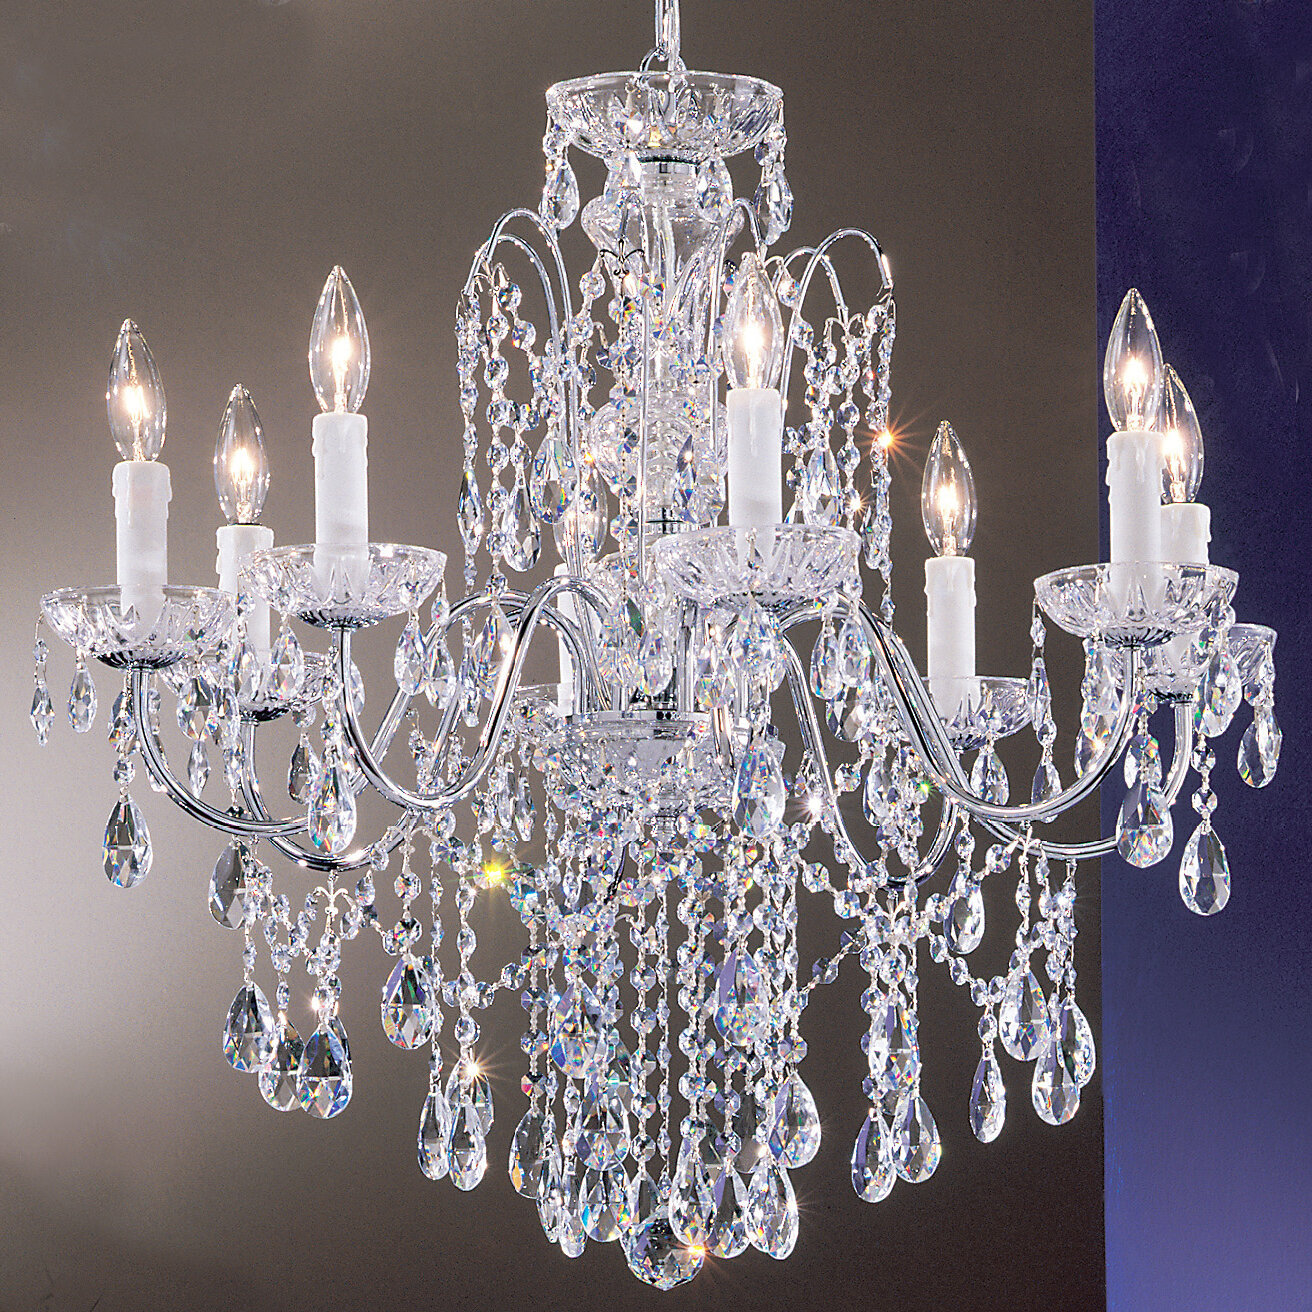 House Of Hampton Letitia 8 Light Candle Style Chandelier